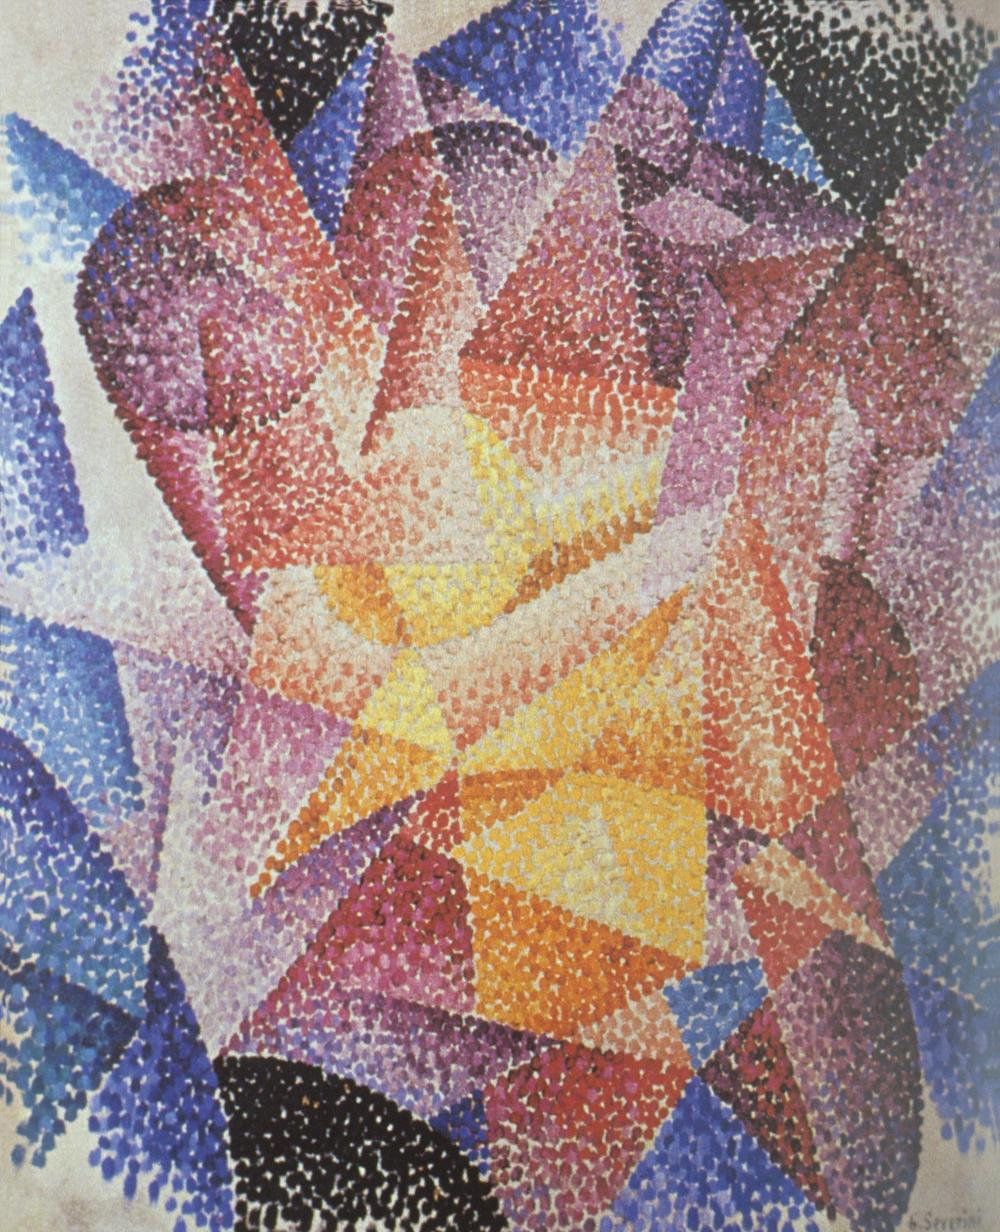 Gino Severini Spherical Expansion of Light (Centrifugal), 1914 Oil on canvas 24 3/8 x 19 3/4 inches